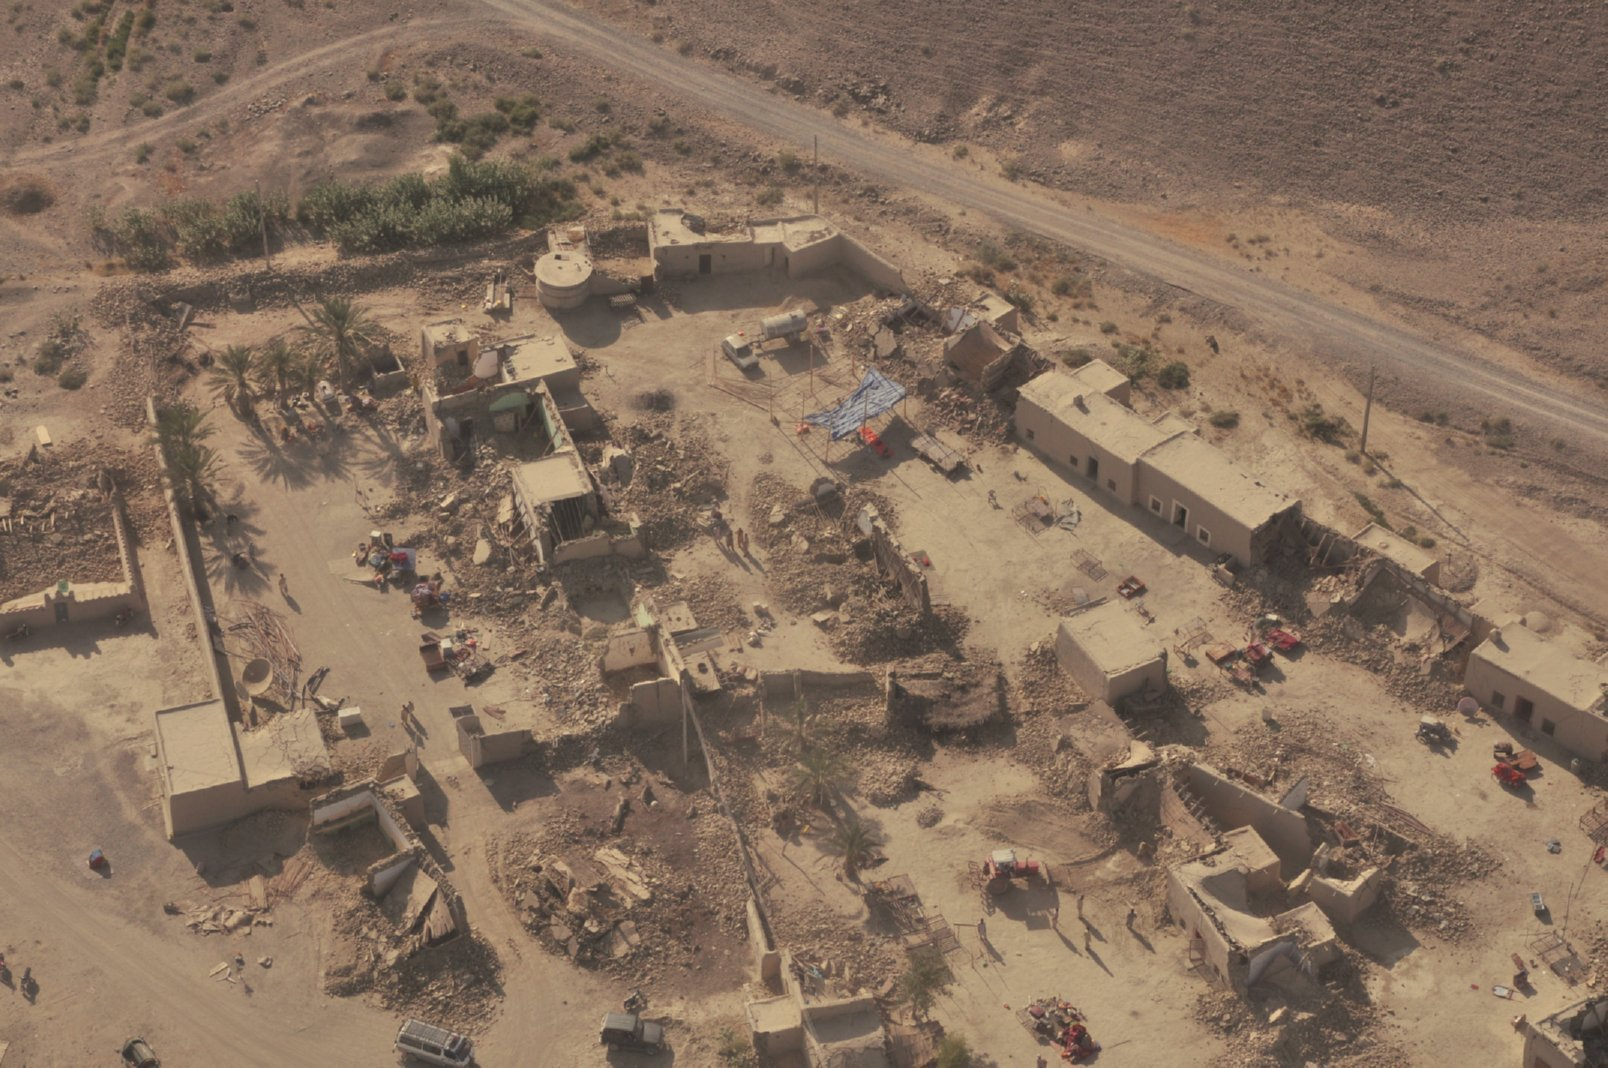 An aerial view of settlements destroyed by a magnitude 7.7 earthquake in Pakistan's Balochistan province, Awaran district. Hundreds of people were killed; 21,000 houses were completely destroyed; and more than 300,000 people were affected